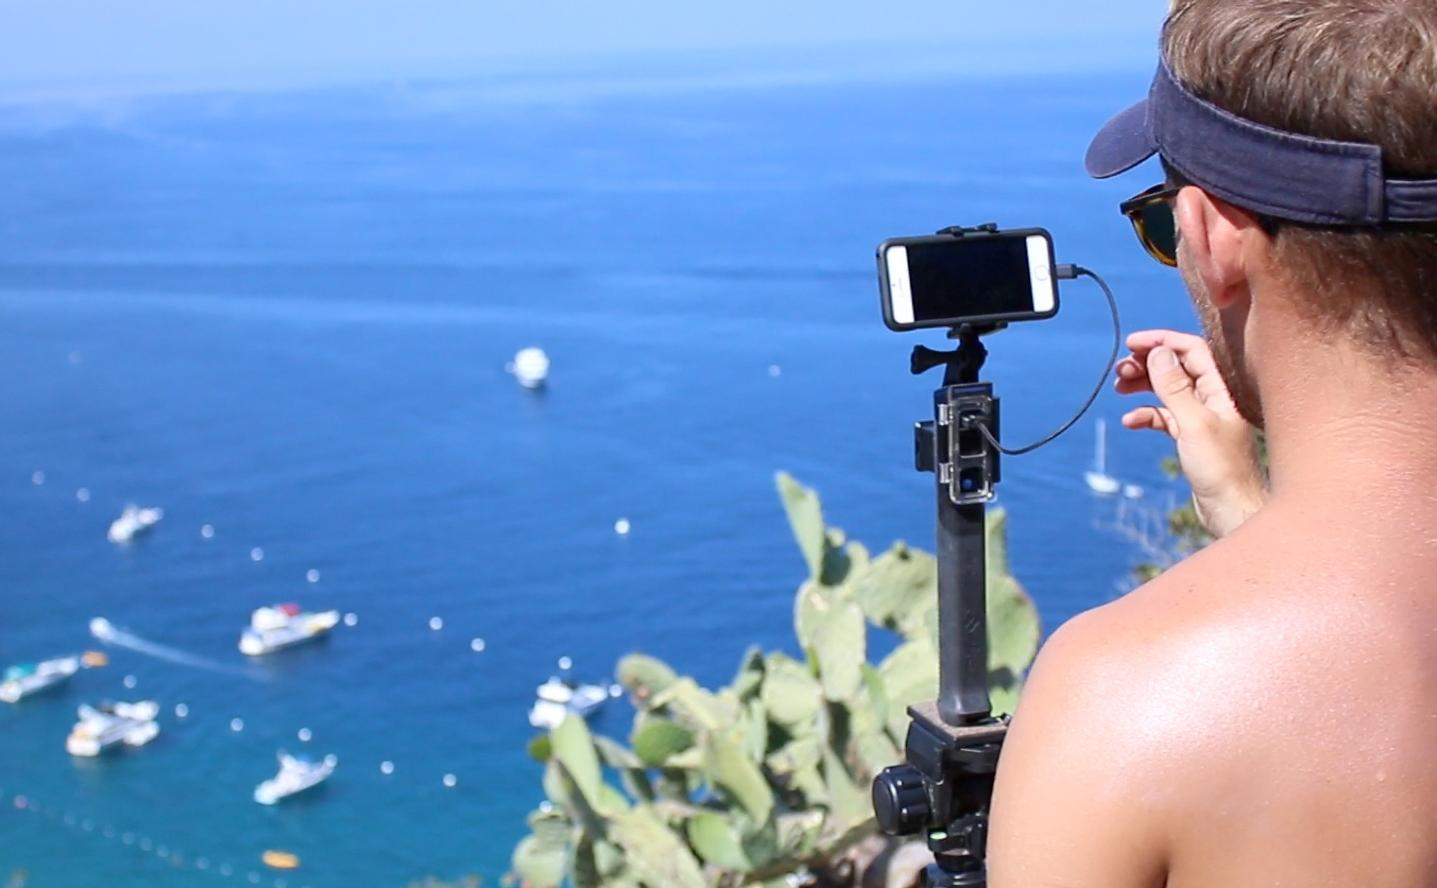 The PolarPro PowerGrip H2O can be used with GoPro cameras or other devices via a mount adapter